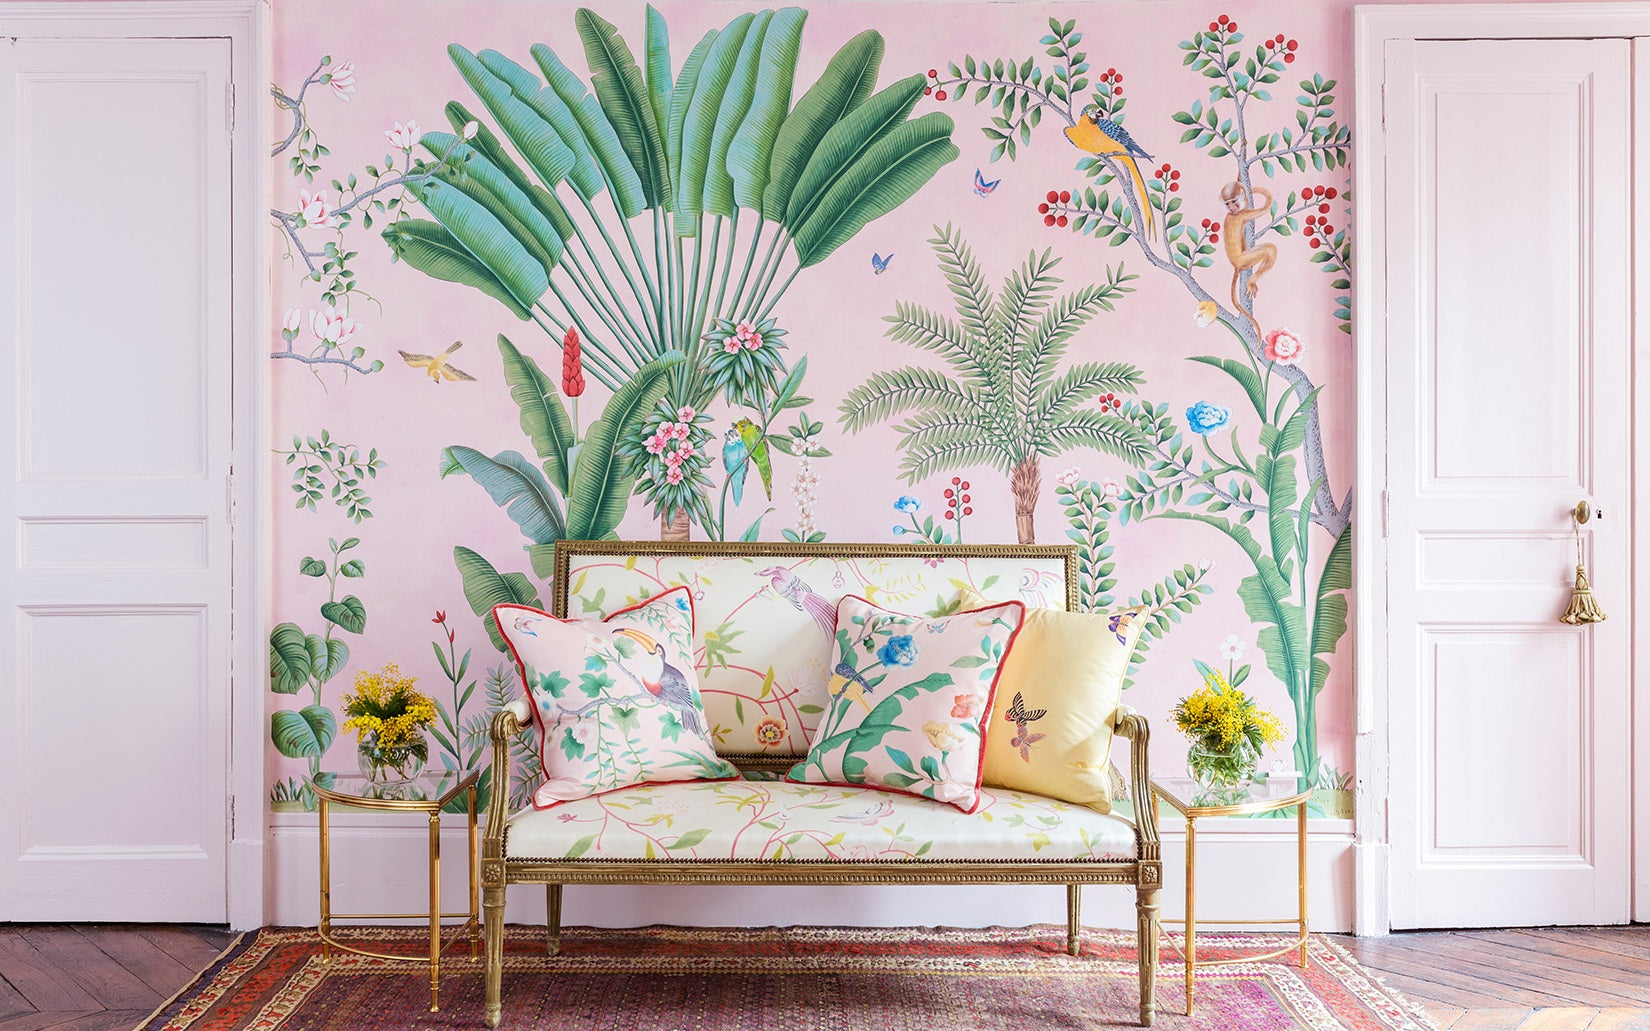 Tropical Print Cushions - How to Decorate with Tropical Prints in your Home Interior - LuxDeco Style Guide